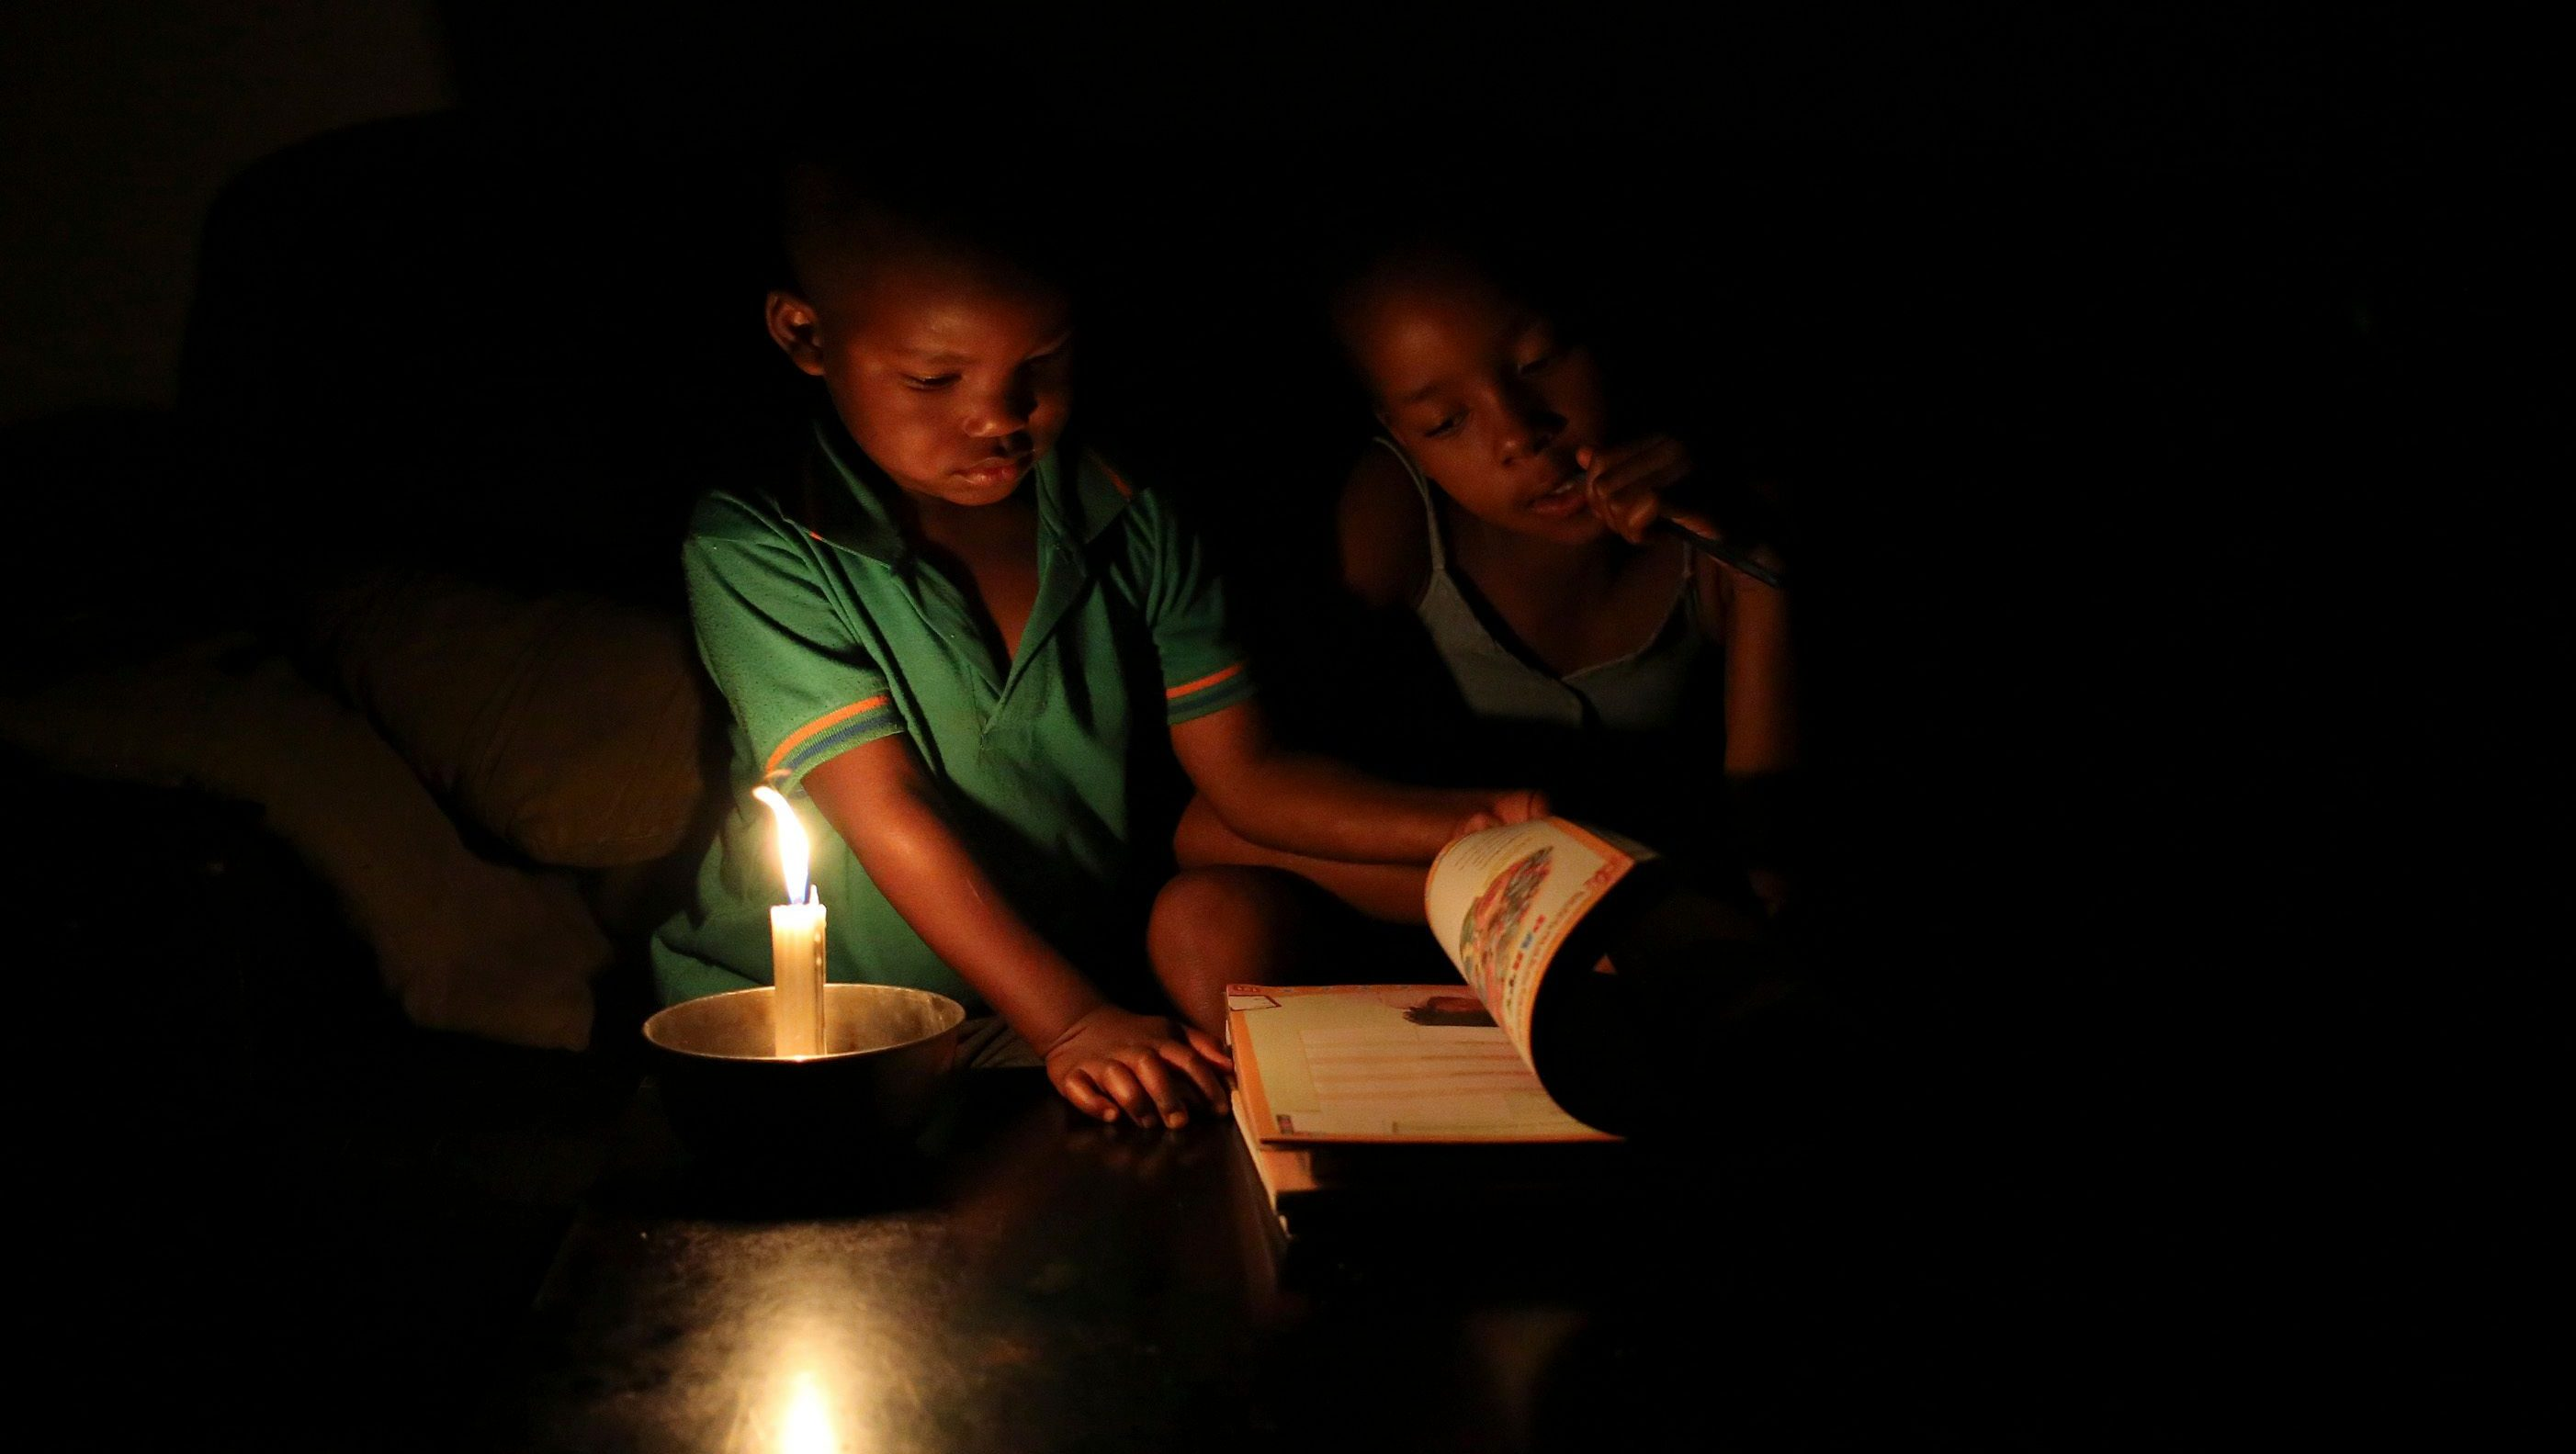 Sinovuyo Bhungane (R), 9, looks on as her studies are interrupted by her cousin Yonga, as she studies using candle light during load shedding in Soweto February 3, 2015. South Africa's power utility Eskom will implement rolling blackouts on Tuesday from 1500 GMT to 2000 GMT, the state-owned company said on its official Twitter account. (SOUTH AFRICA - Tags: ENERGY TPX IMAGES OF THE DAY BUSINESS) - GM1EB240A6N01